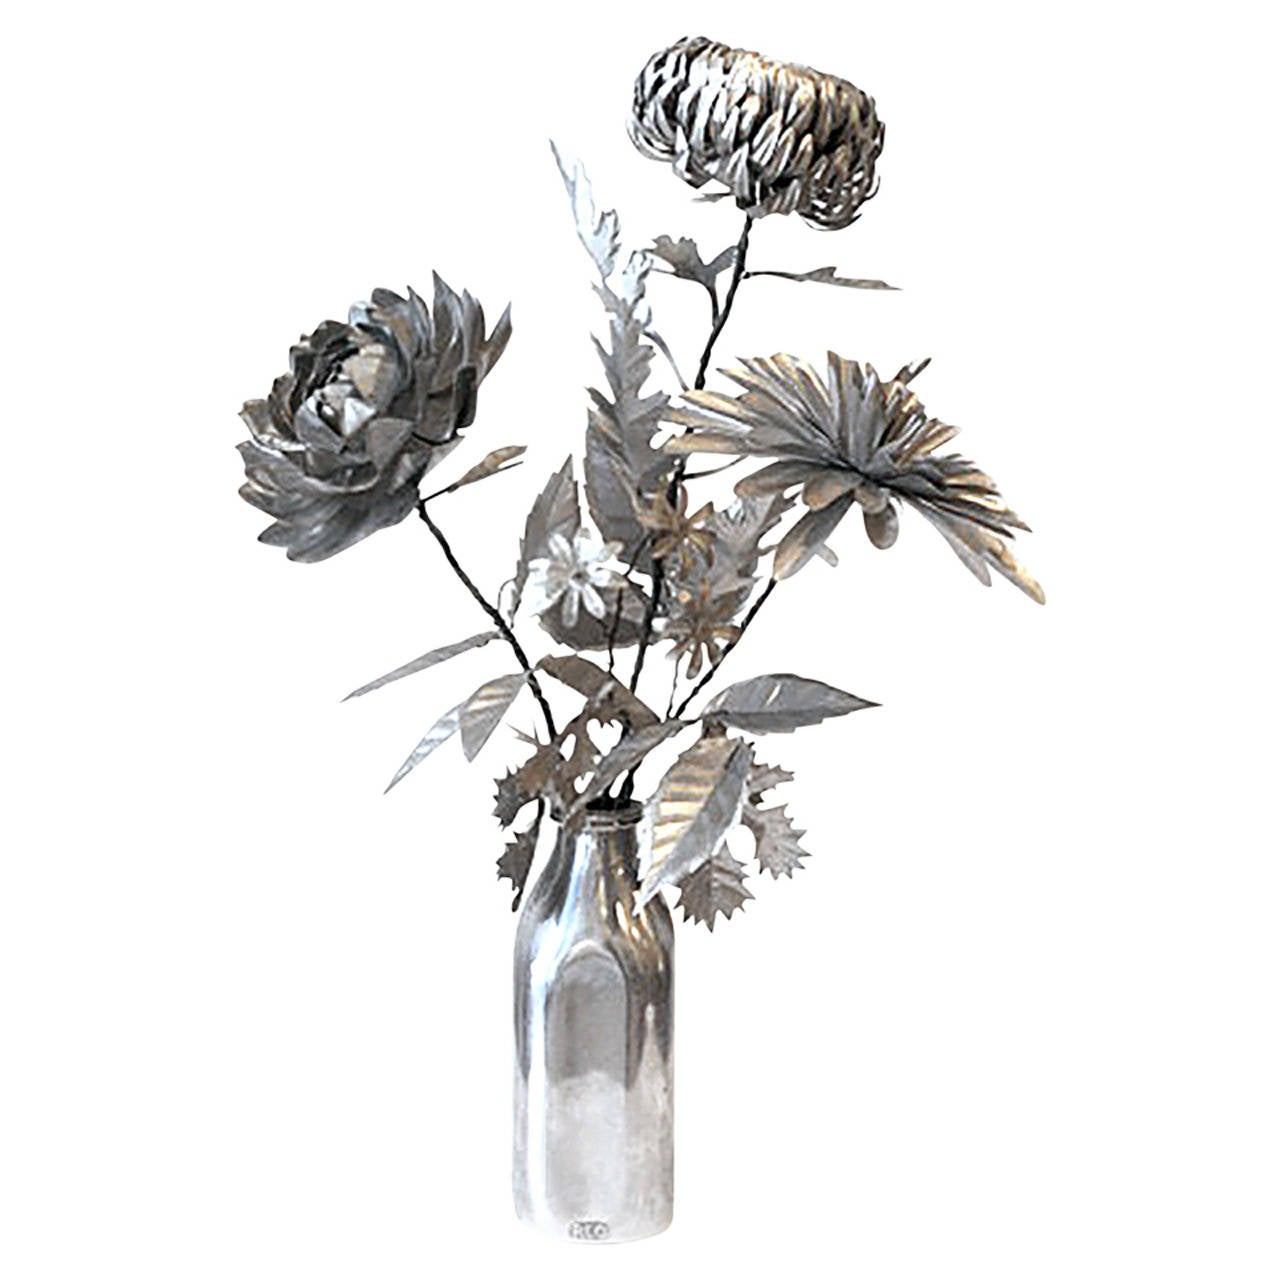 Kirk Maxson Cut Metal Flower Sculpture For Sale At 1stdibs